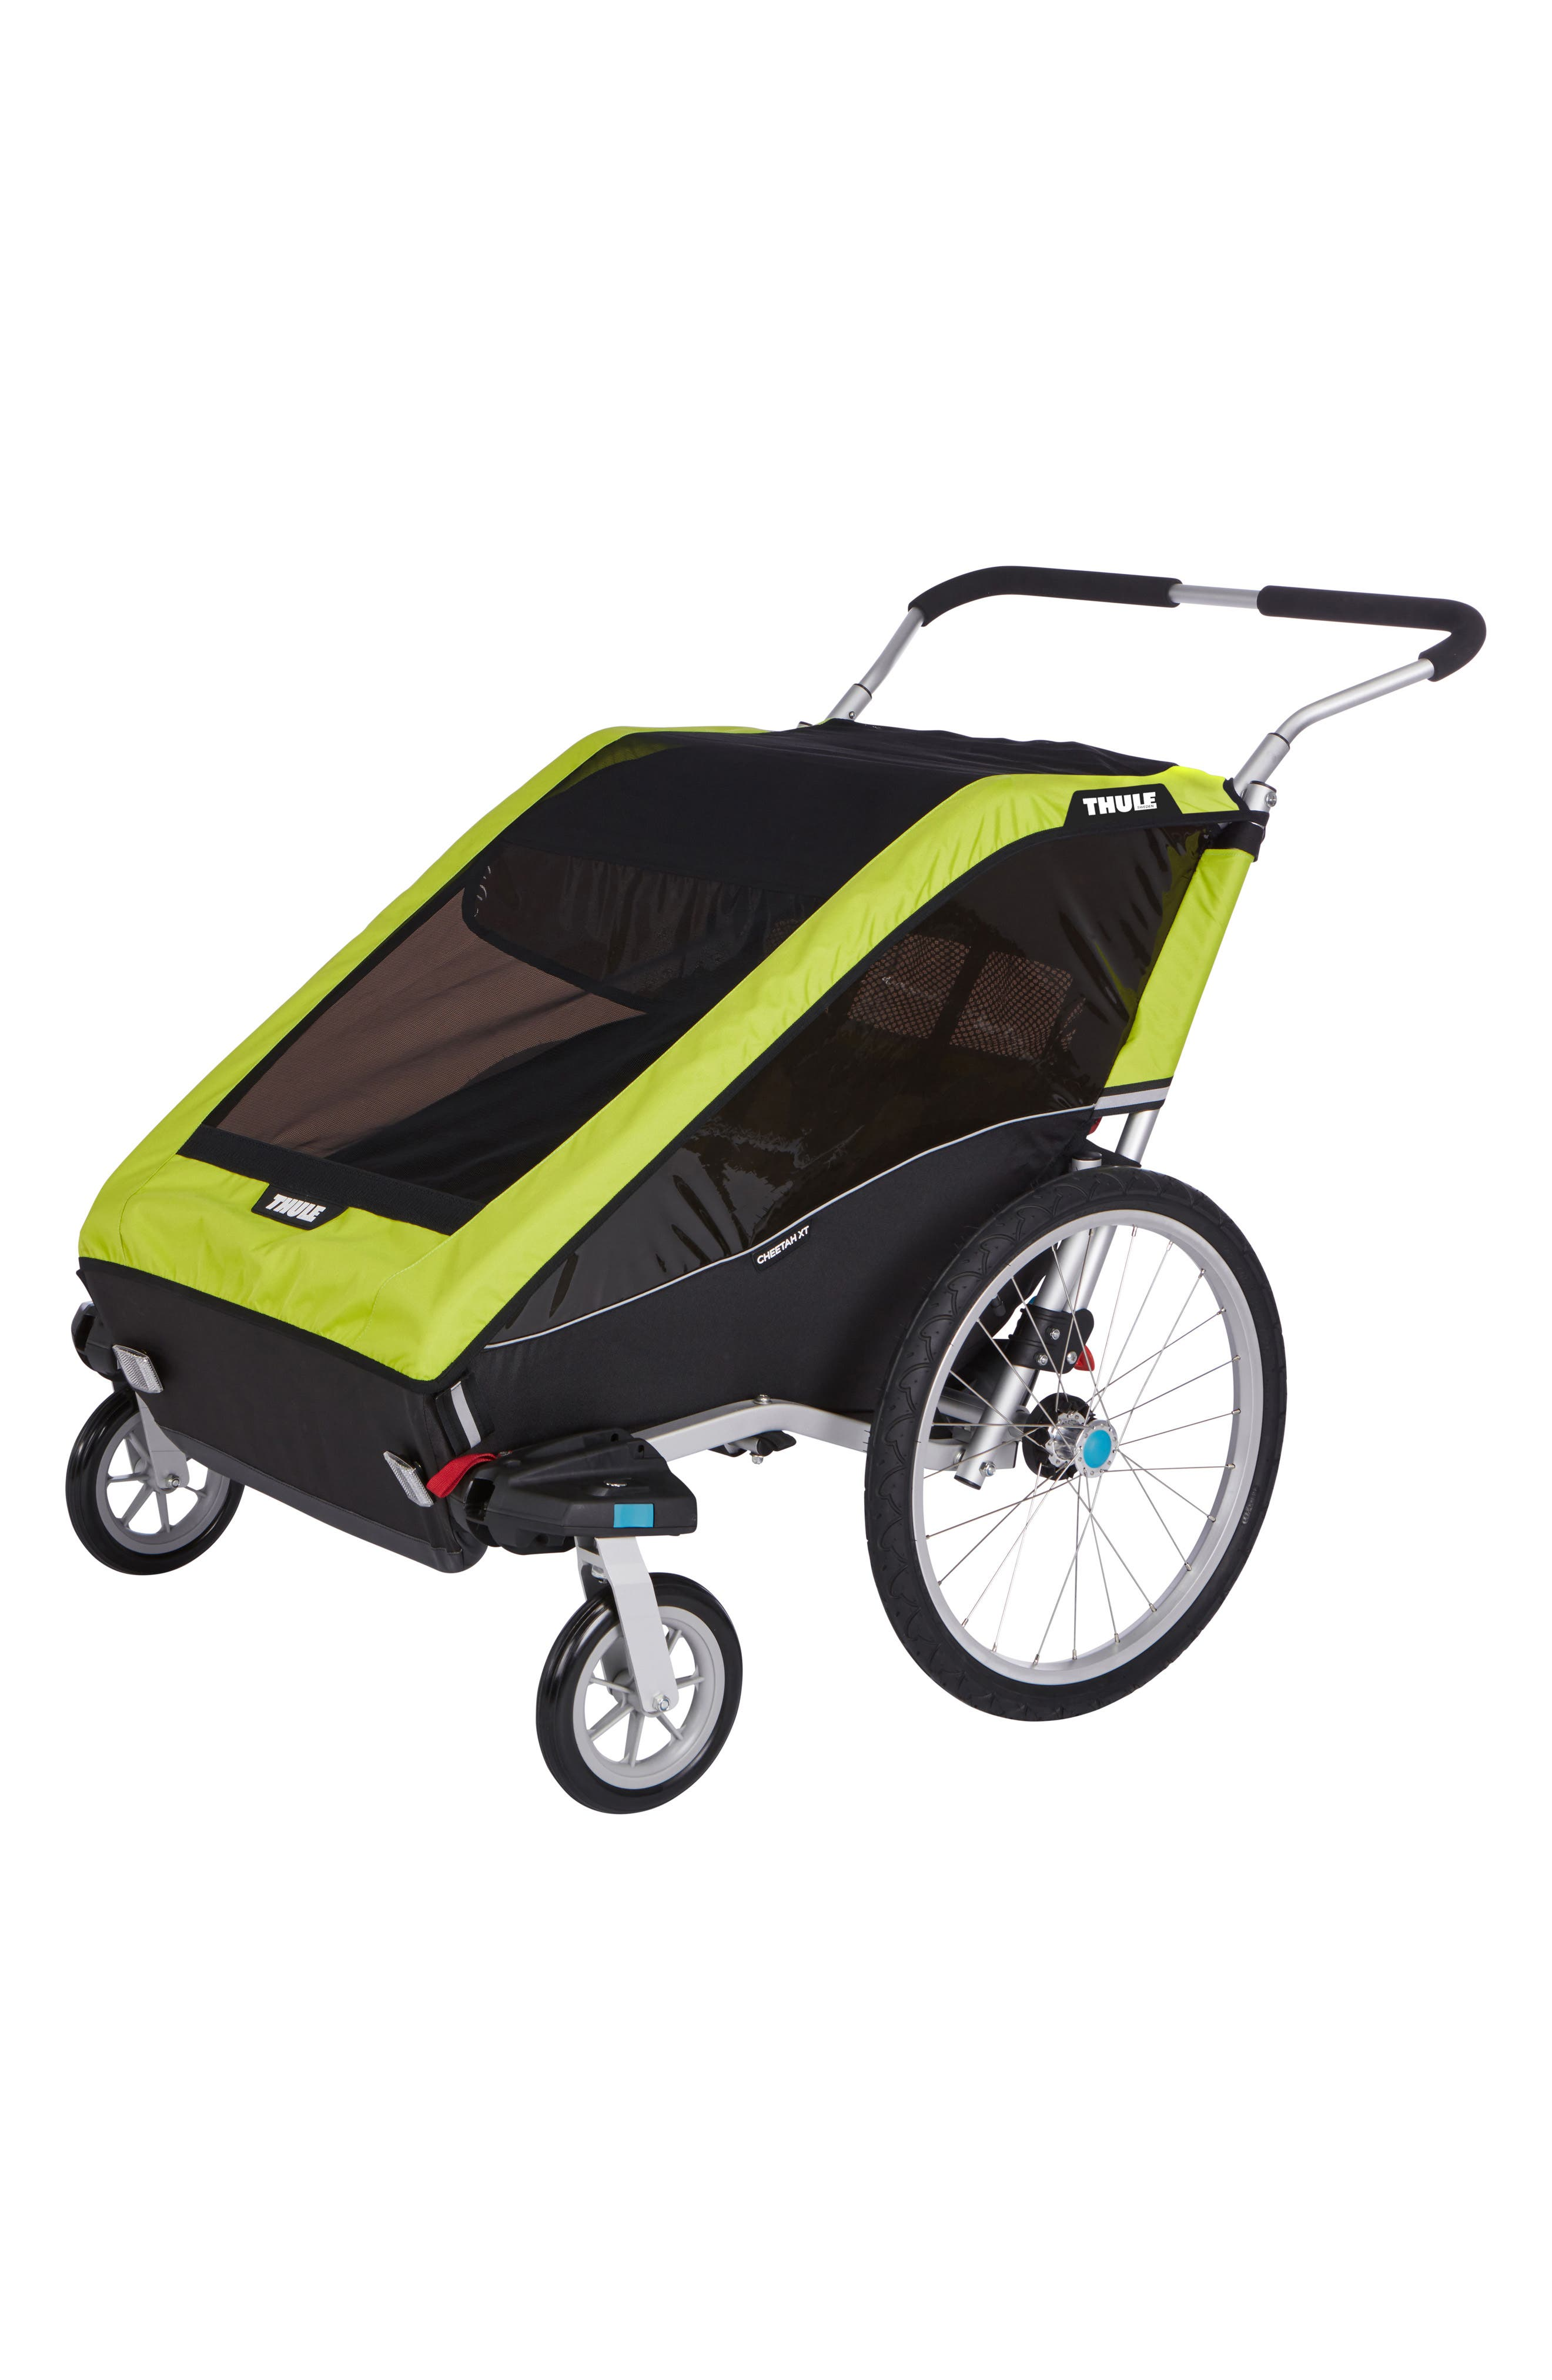 Chariot Cheetah XT 2 Multisport Double Cycle Trailer/Stroller,                         Main,                         color, Chartreuse